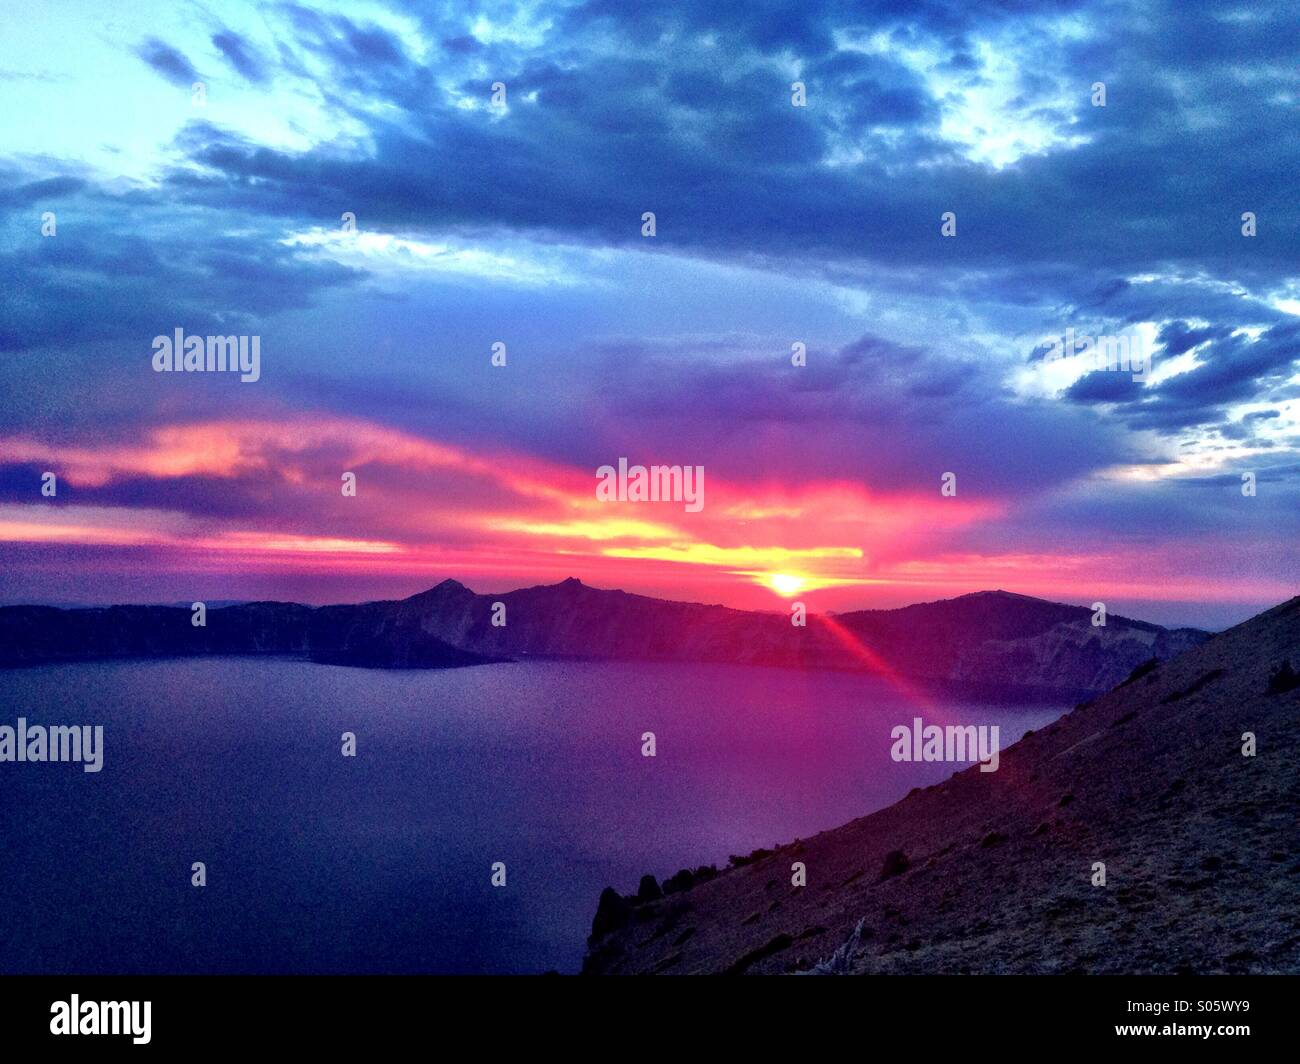 Brilliant sunset over Crater Lake National Park from Cloud Cap point. - Stock Image